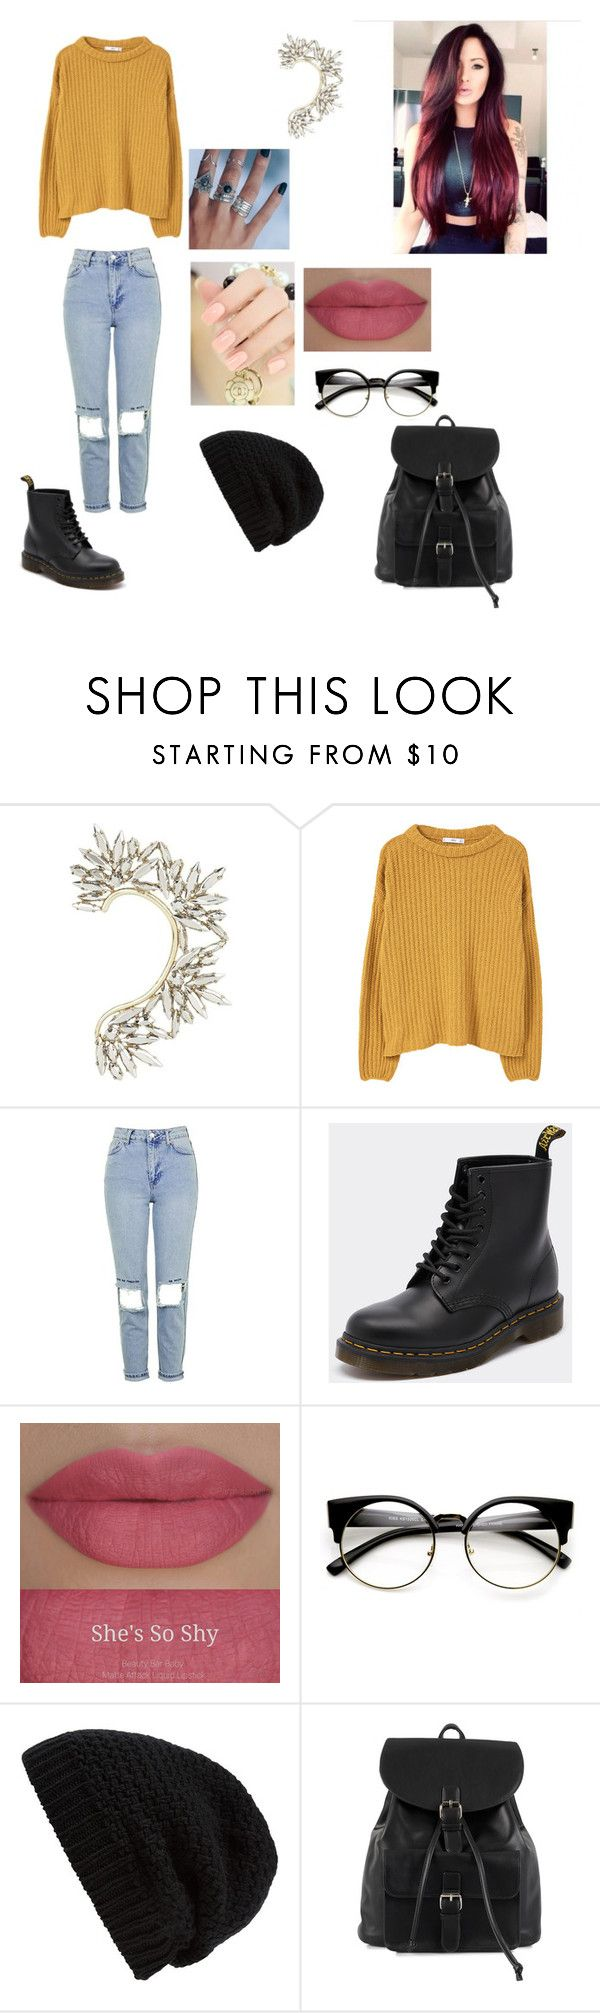 """""""Untitled #475"""" by mathilde-guerra ❤ liked on Polyvore featuring BCBGMAXAZRIA, MANGO, Topshop, Dr. Martens, Shop Dixi, Rick Owens and NLY Accessories"""